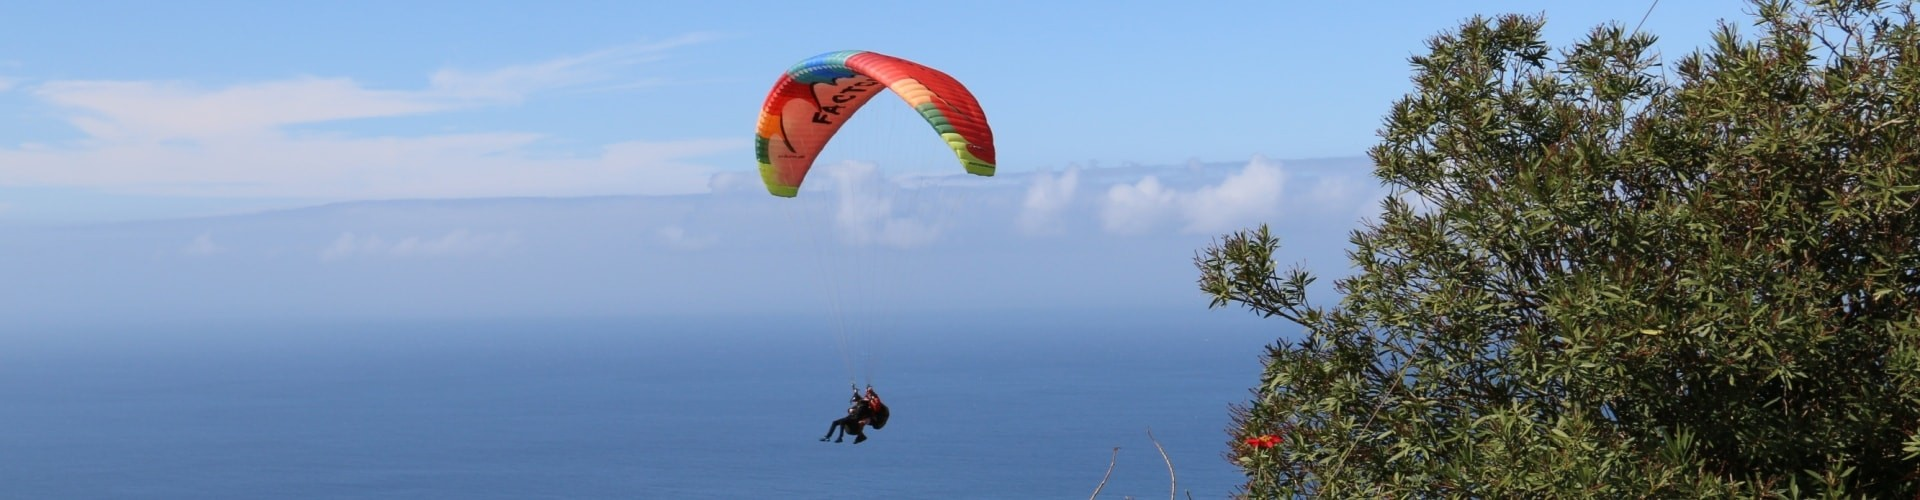 Air Activities in Madeira Island